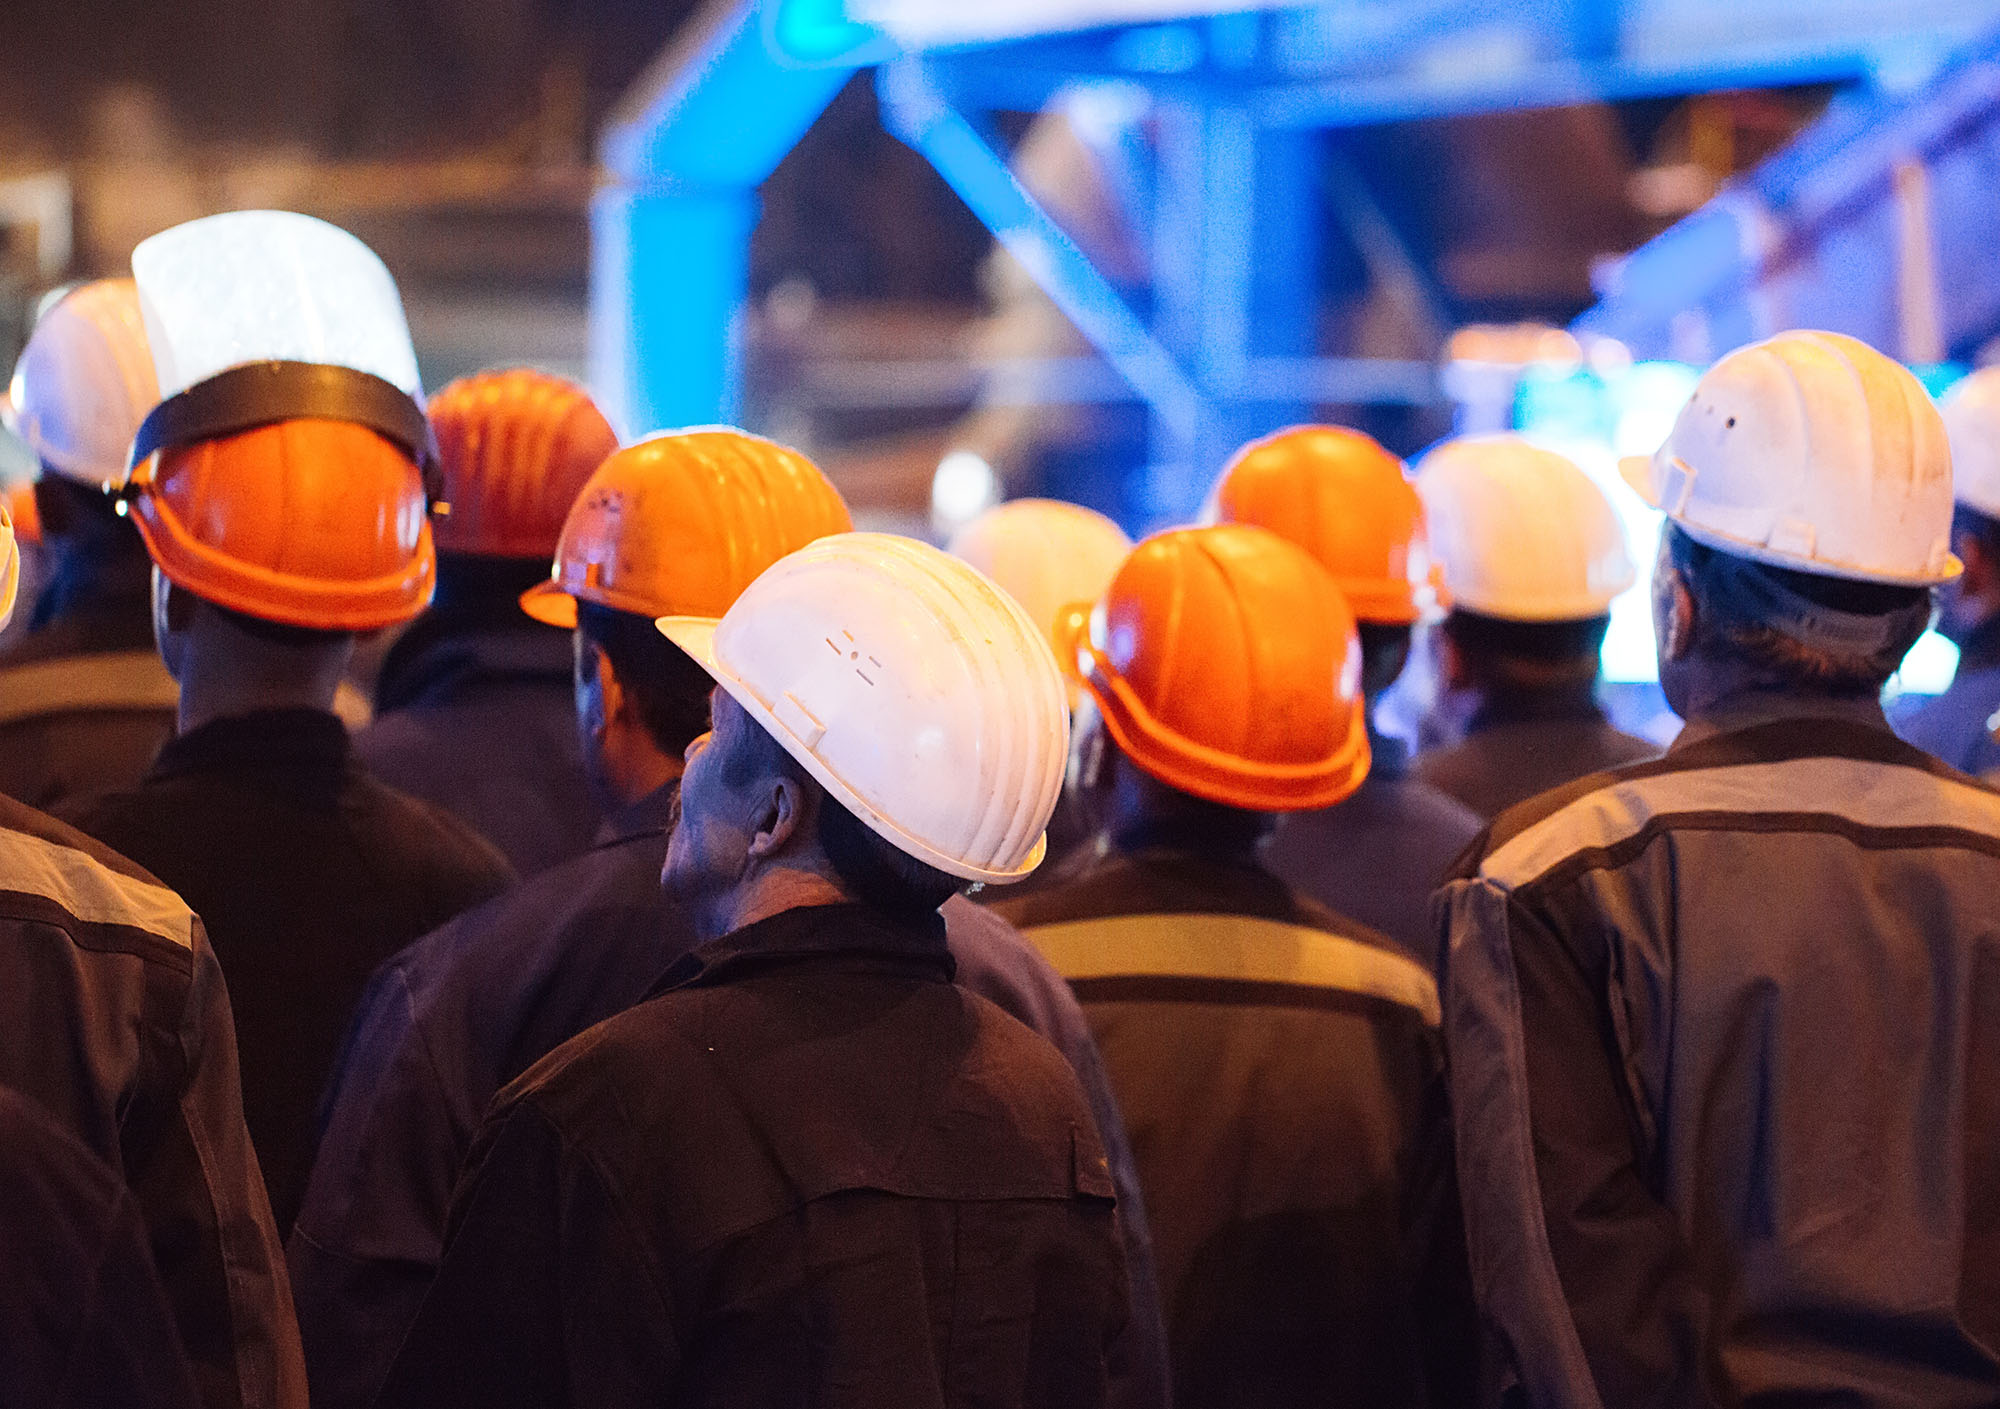 Are unionised workplaces better for employee health and safety?